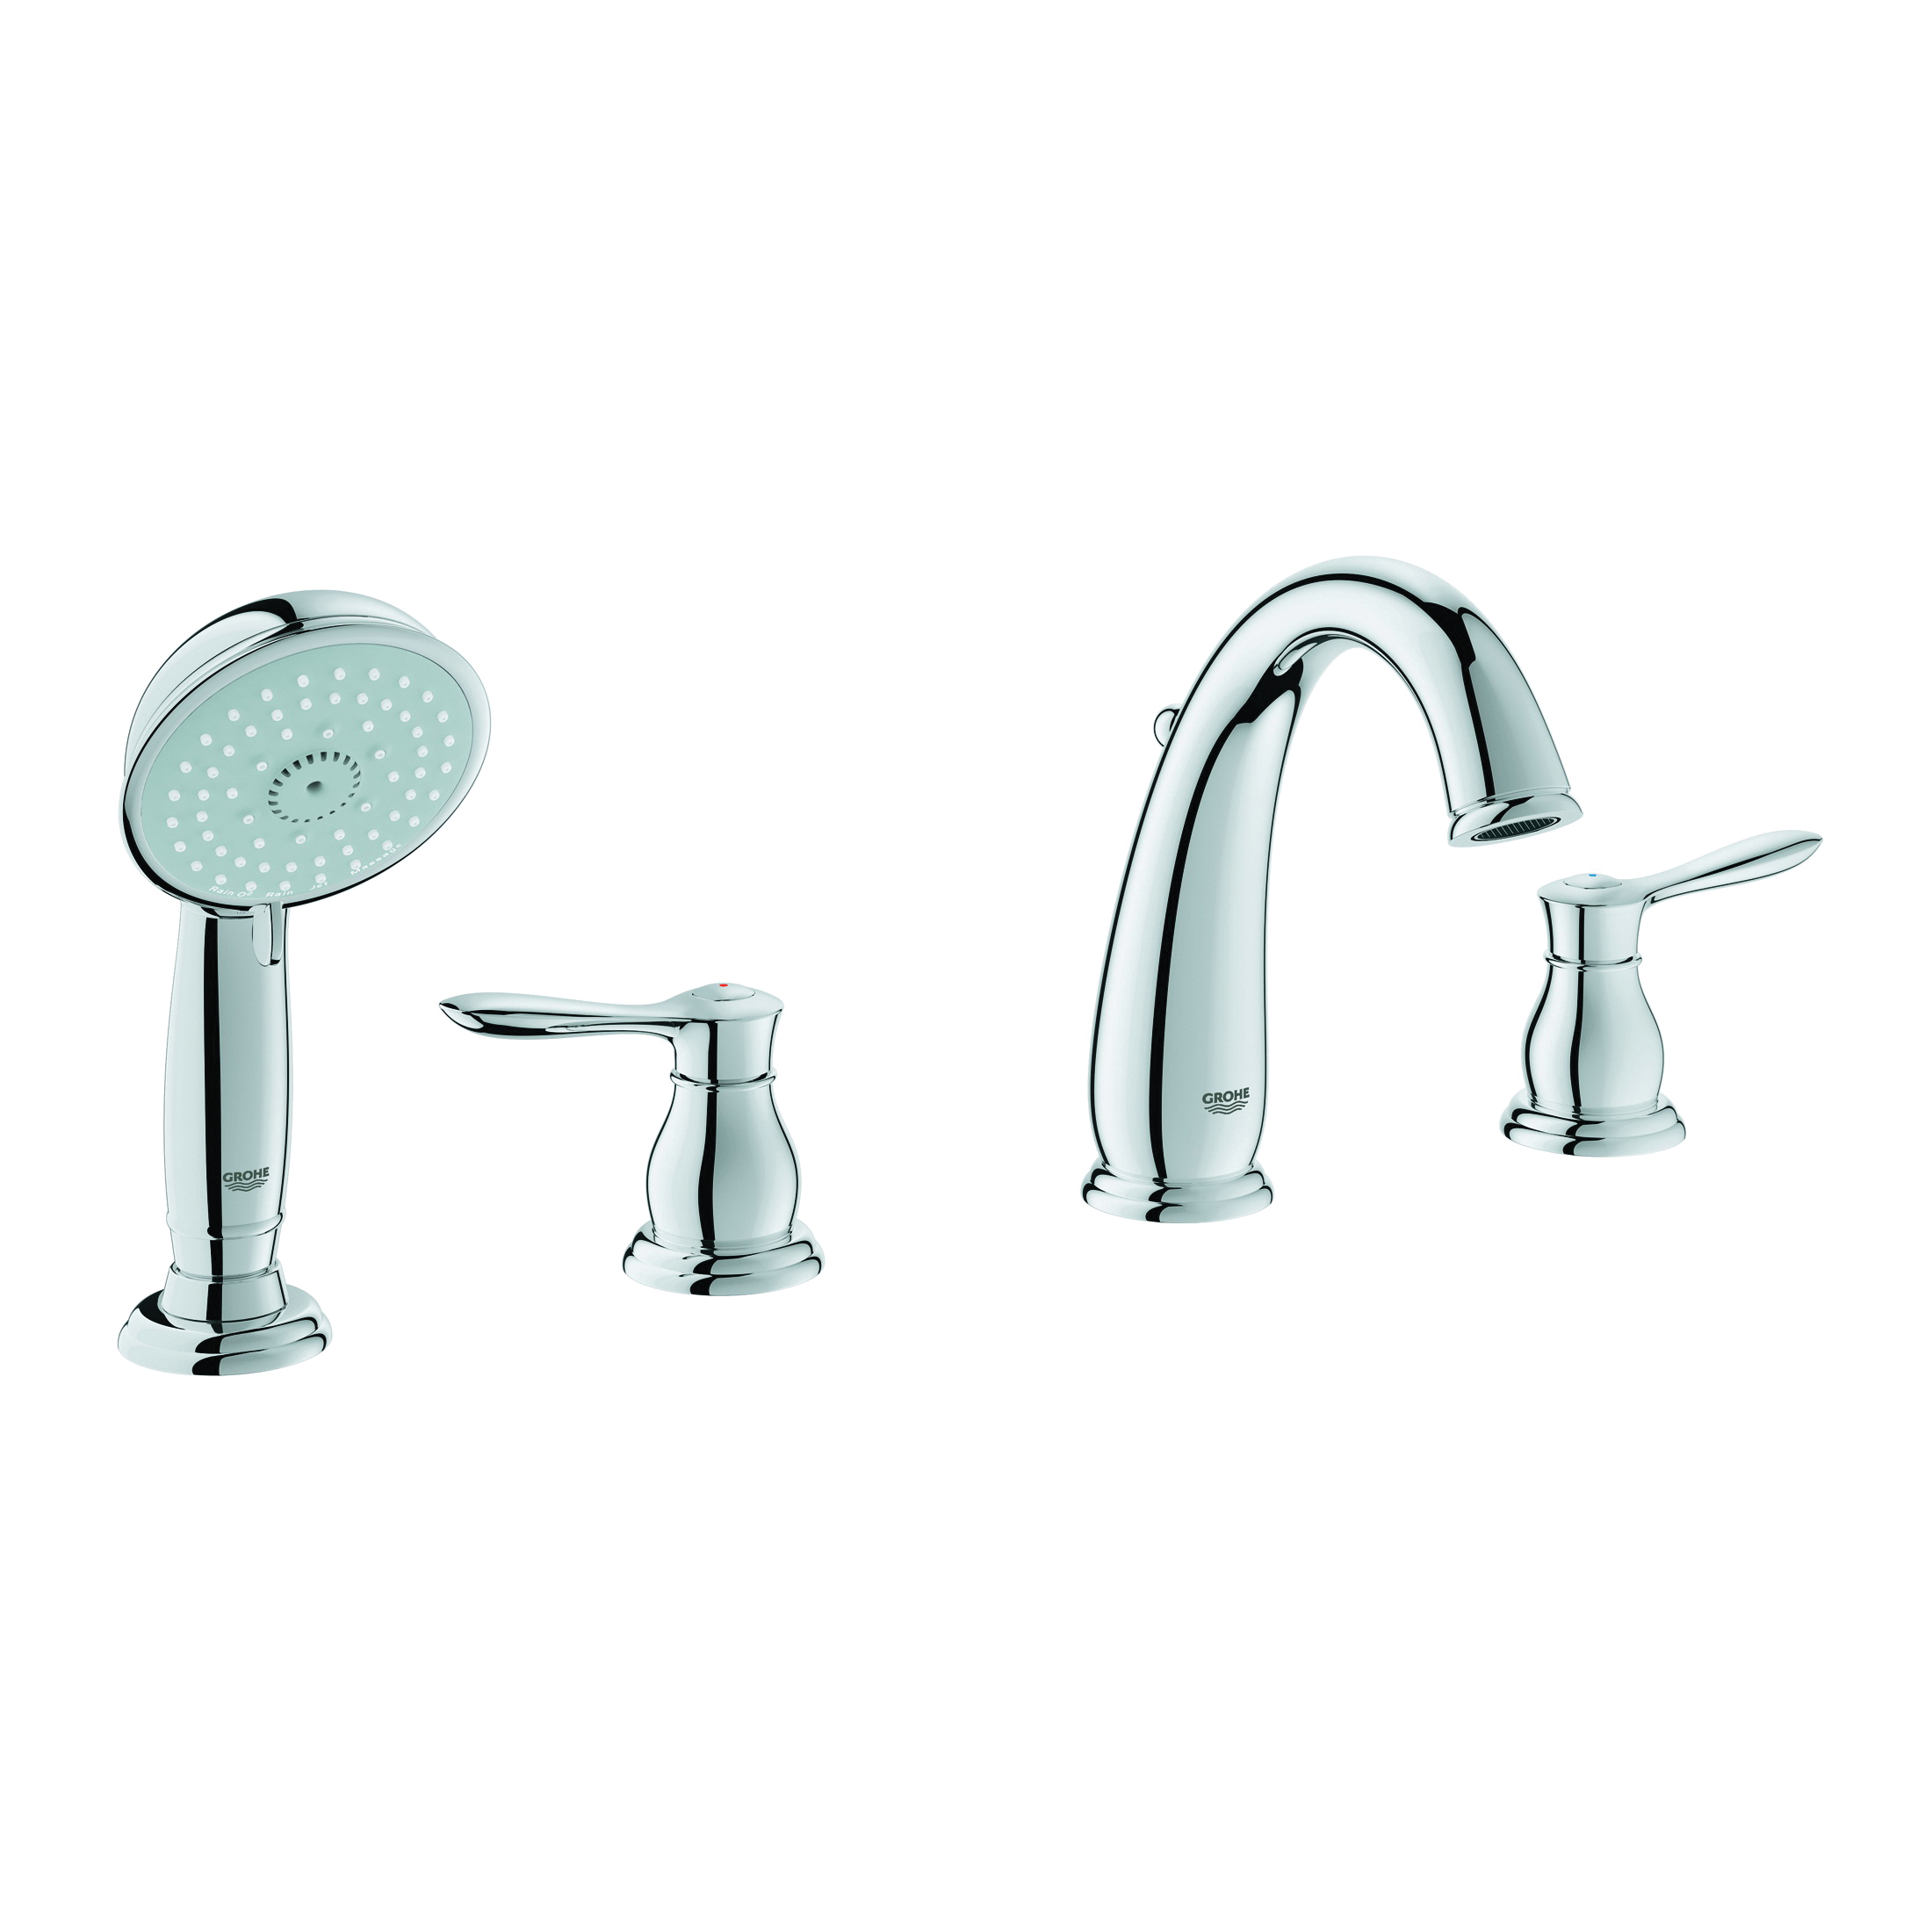 Consolidated Supply Co. | GROHE 25153000 Parkfield™ Roman Tub Filler ...